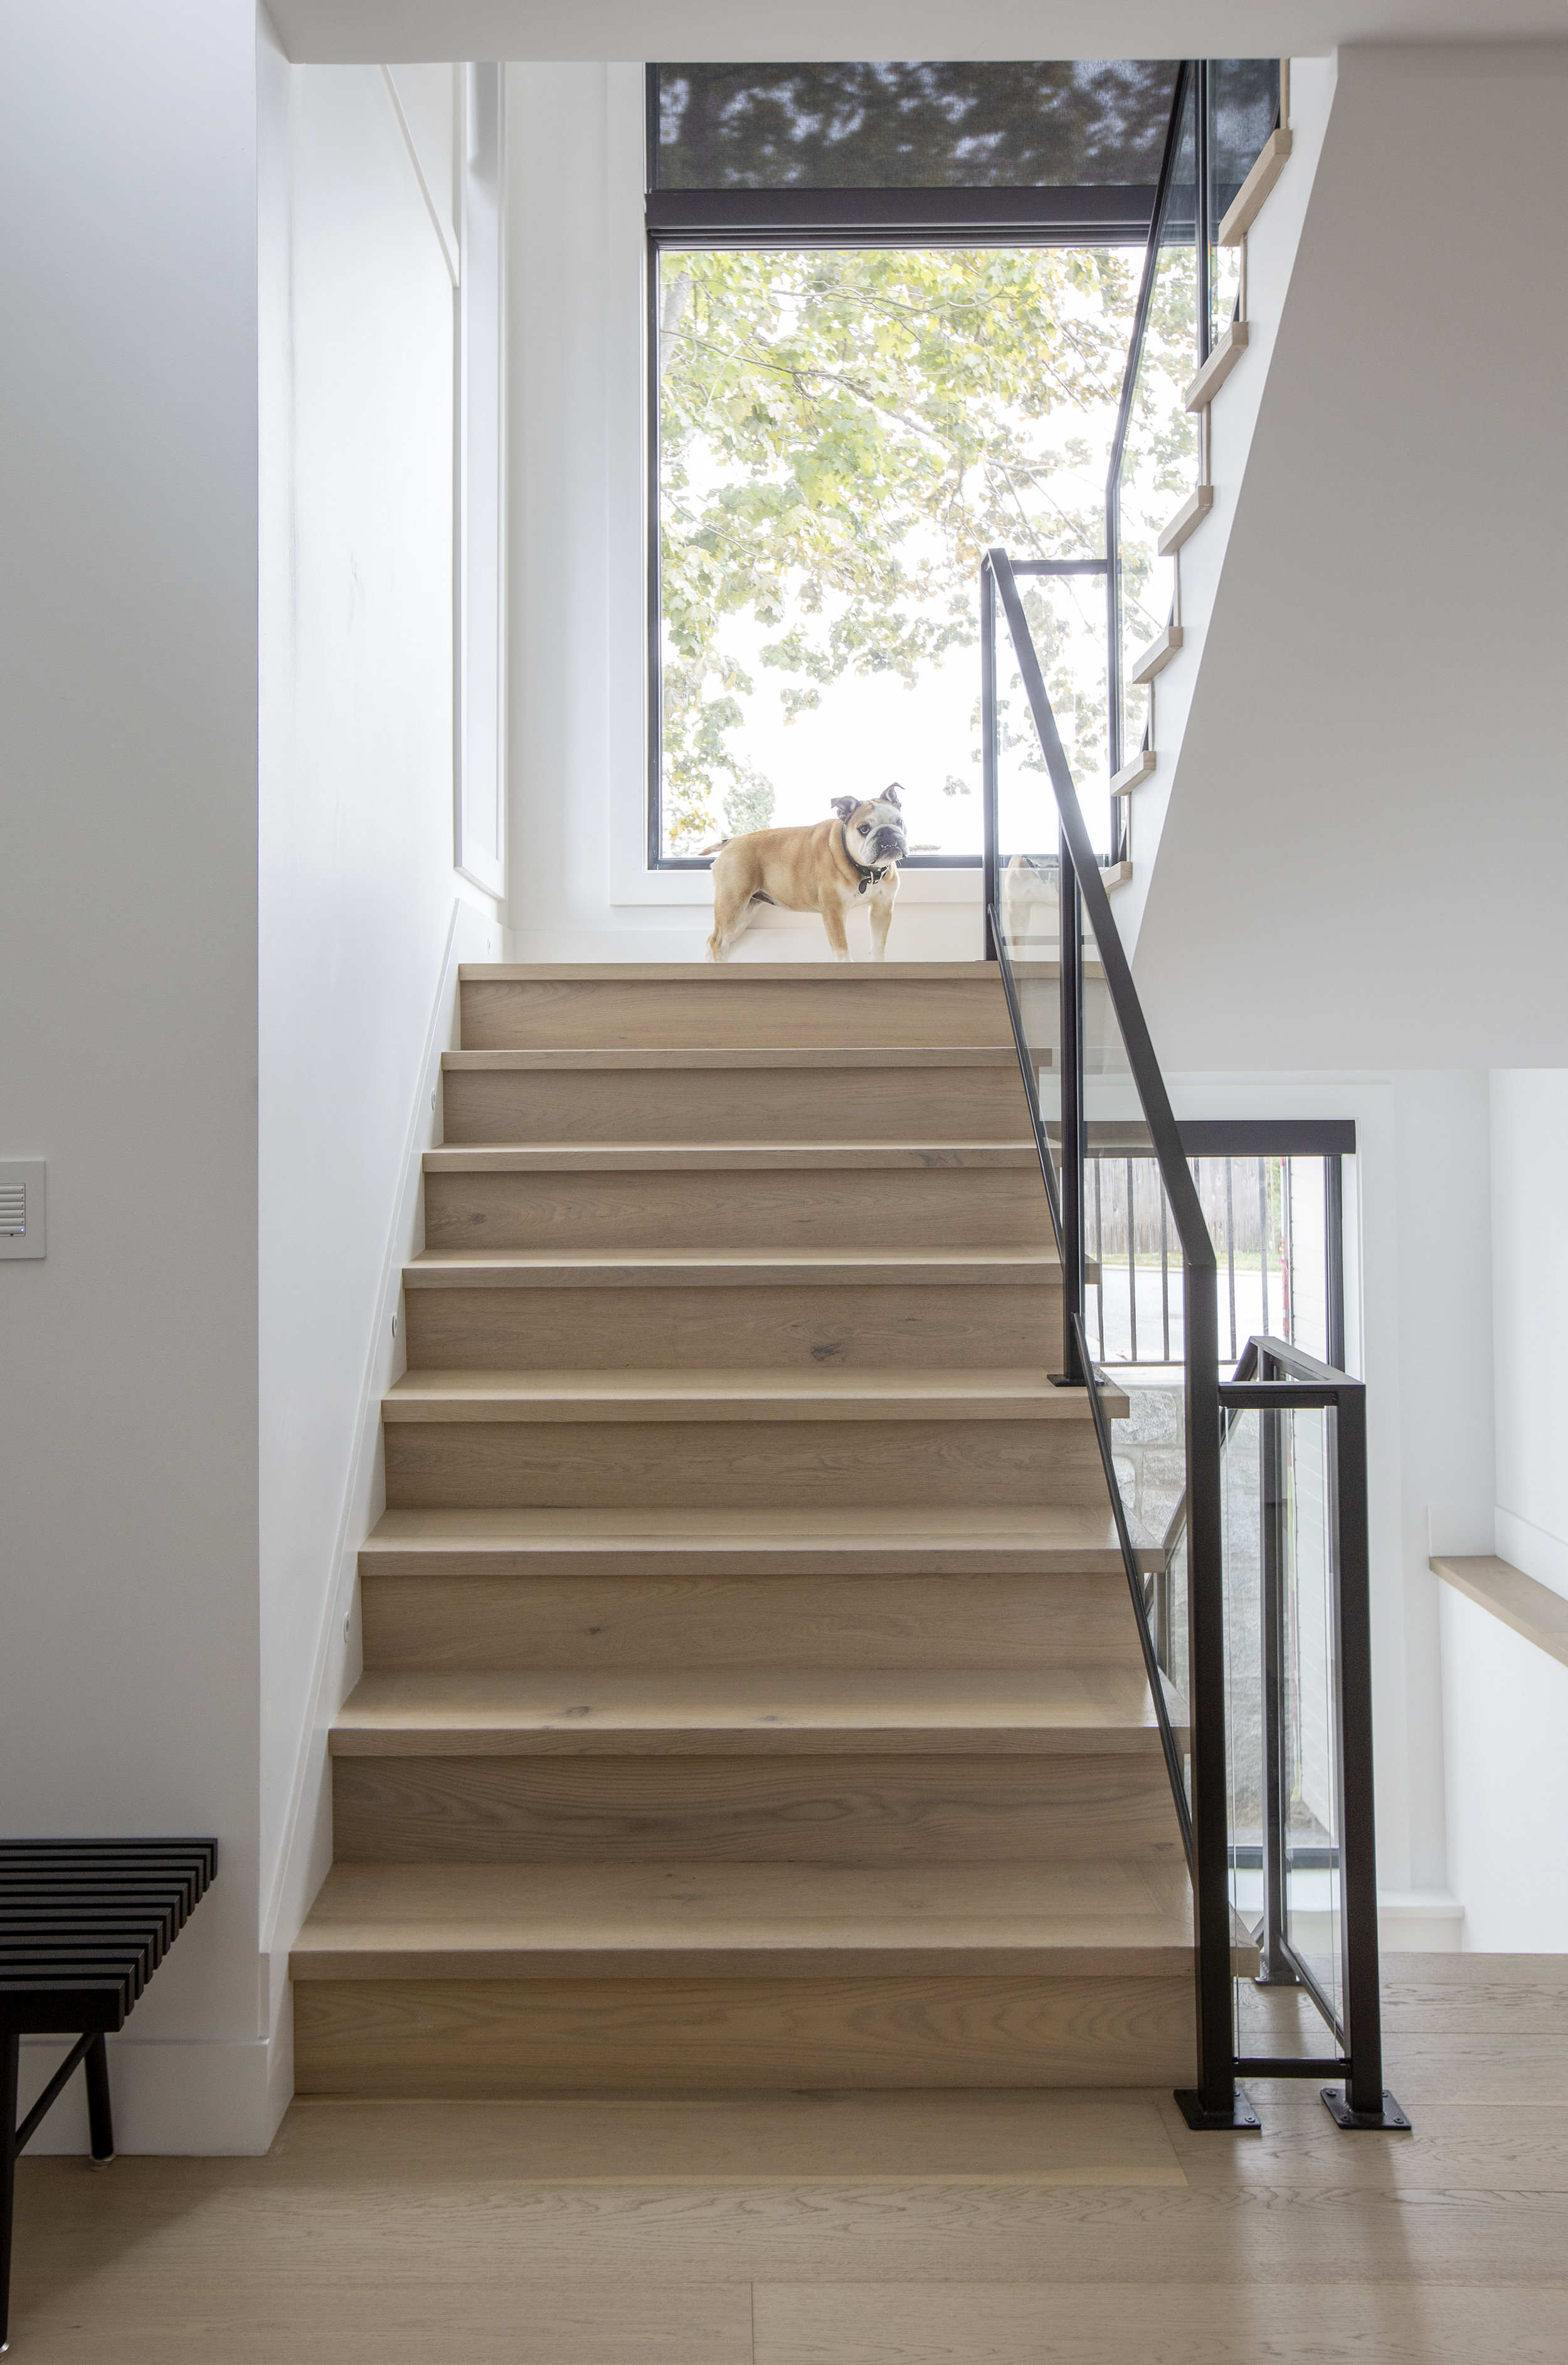 A bulldog who is a good boy stands at the top of the stairs which leads to a large bay window in East 13th Street.